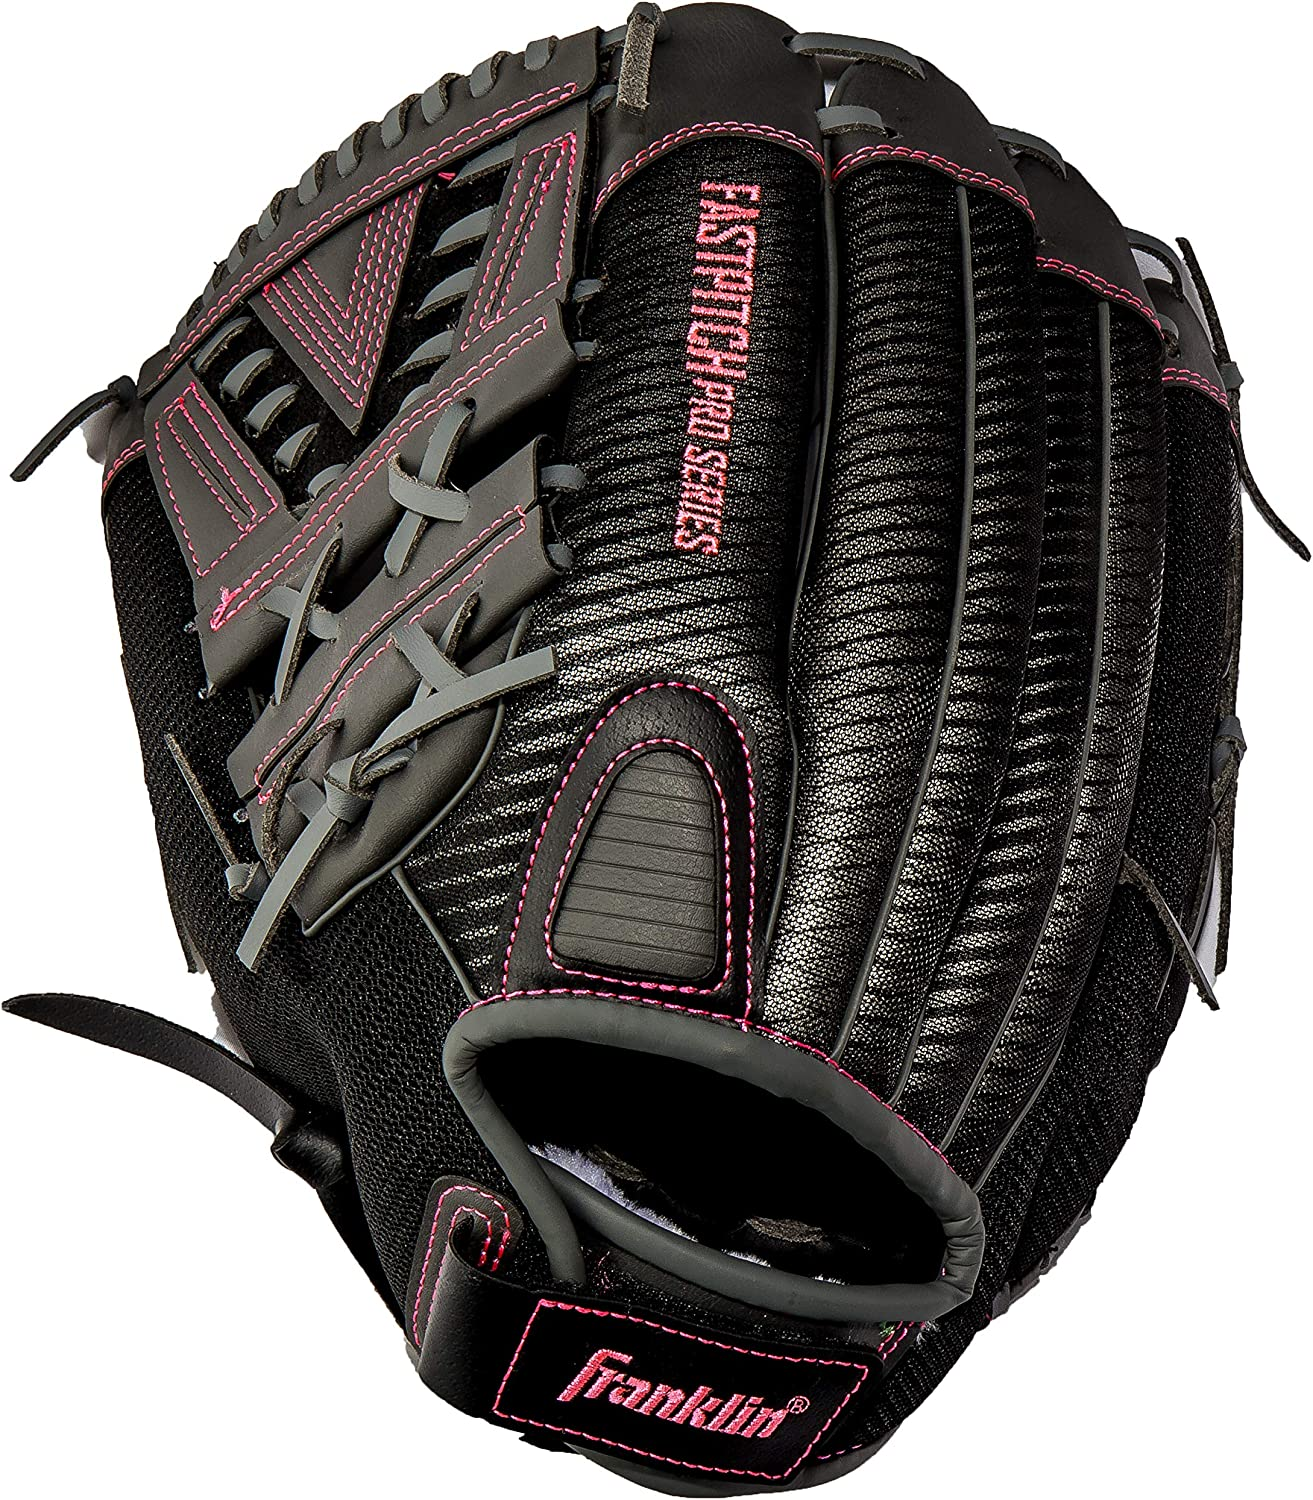 11.5in 12.5in and 13in Size Mitts Franklin Sports Fastpitch Pro Series Softball Gloves 11in Adult and Youth Sizes Right or Left Hand Throw 12in